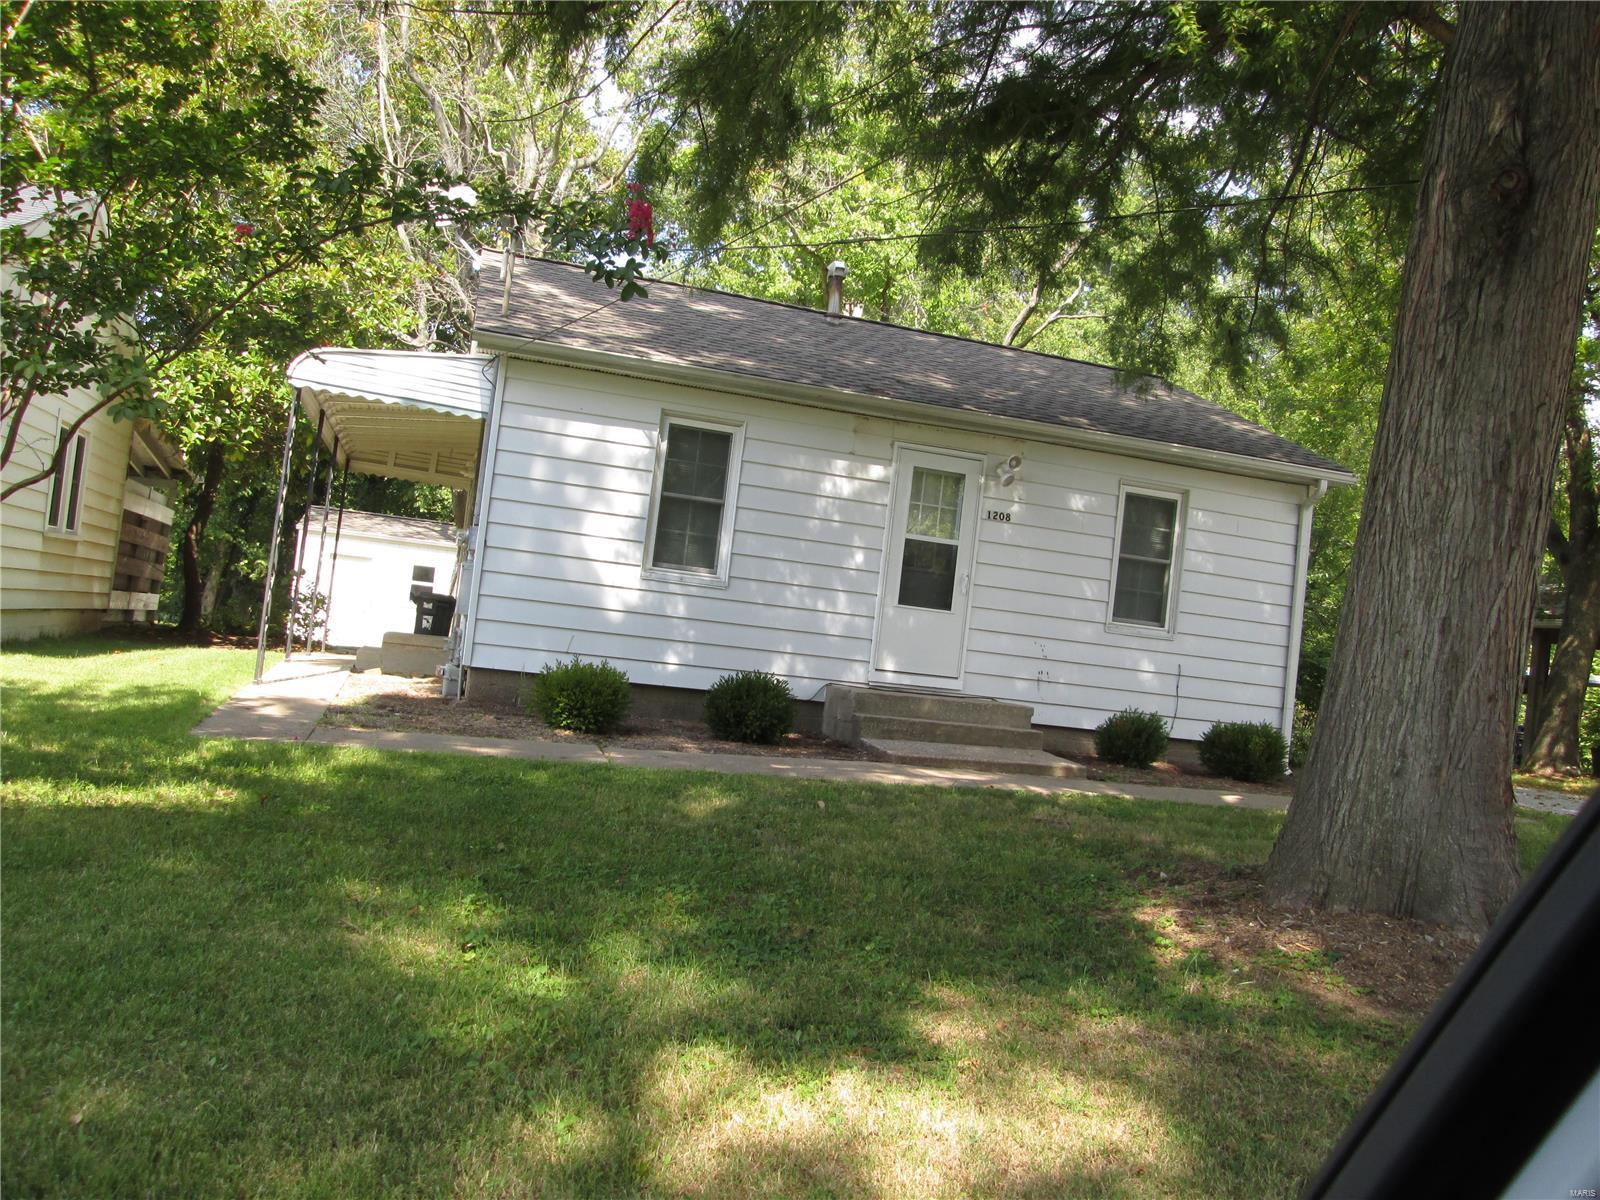 1208 W North Street W #1208 Property Photo - Carbondale, IL real estate listing